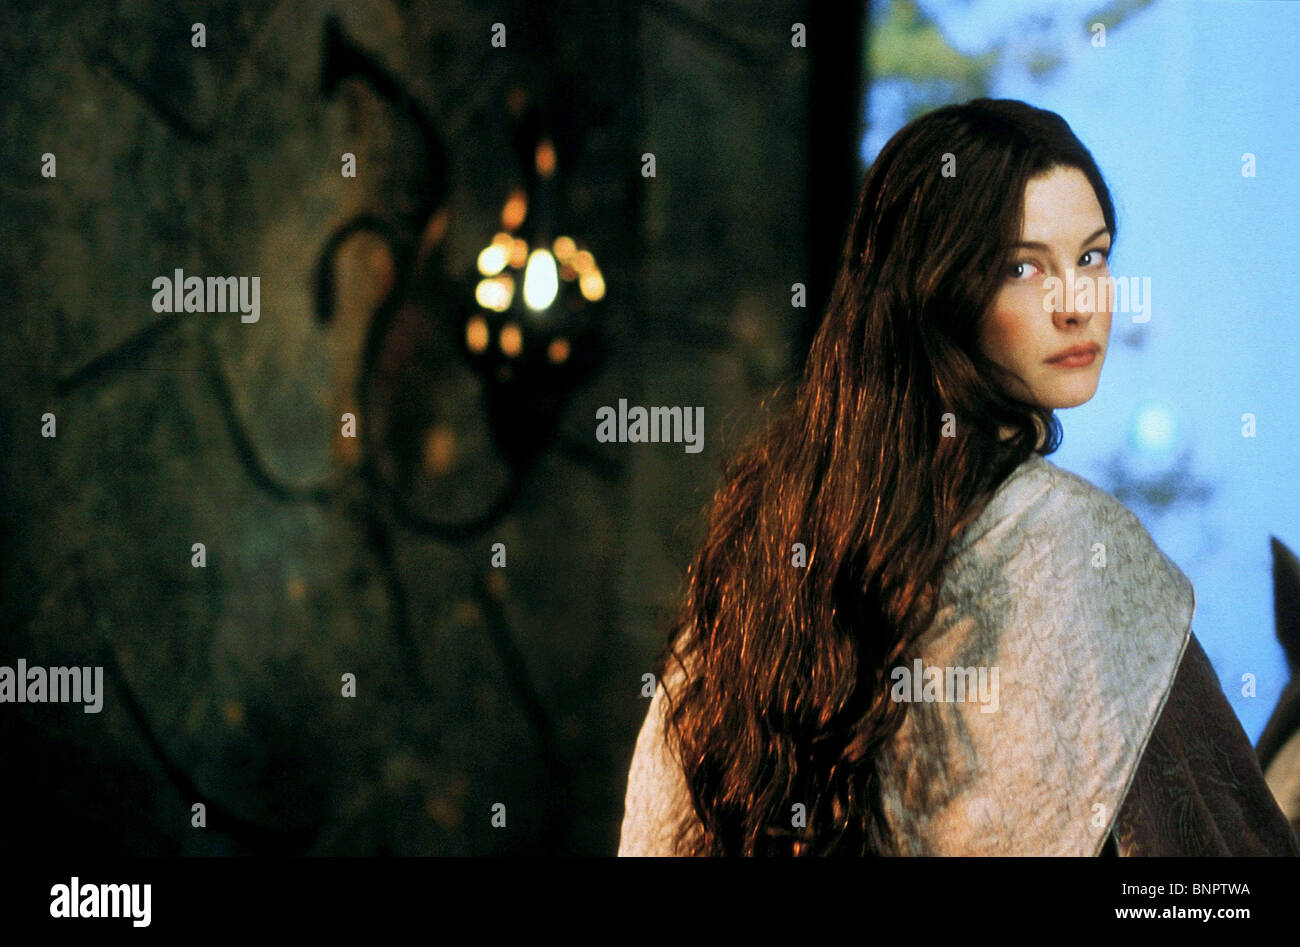 Liv Tyler The Lord Of The Rings The Two Towers 2002 Stock Photo Alamy